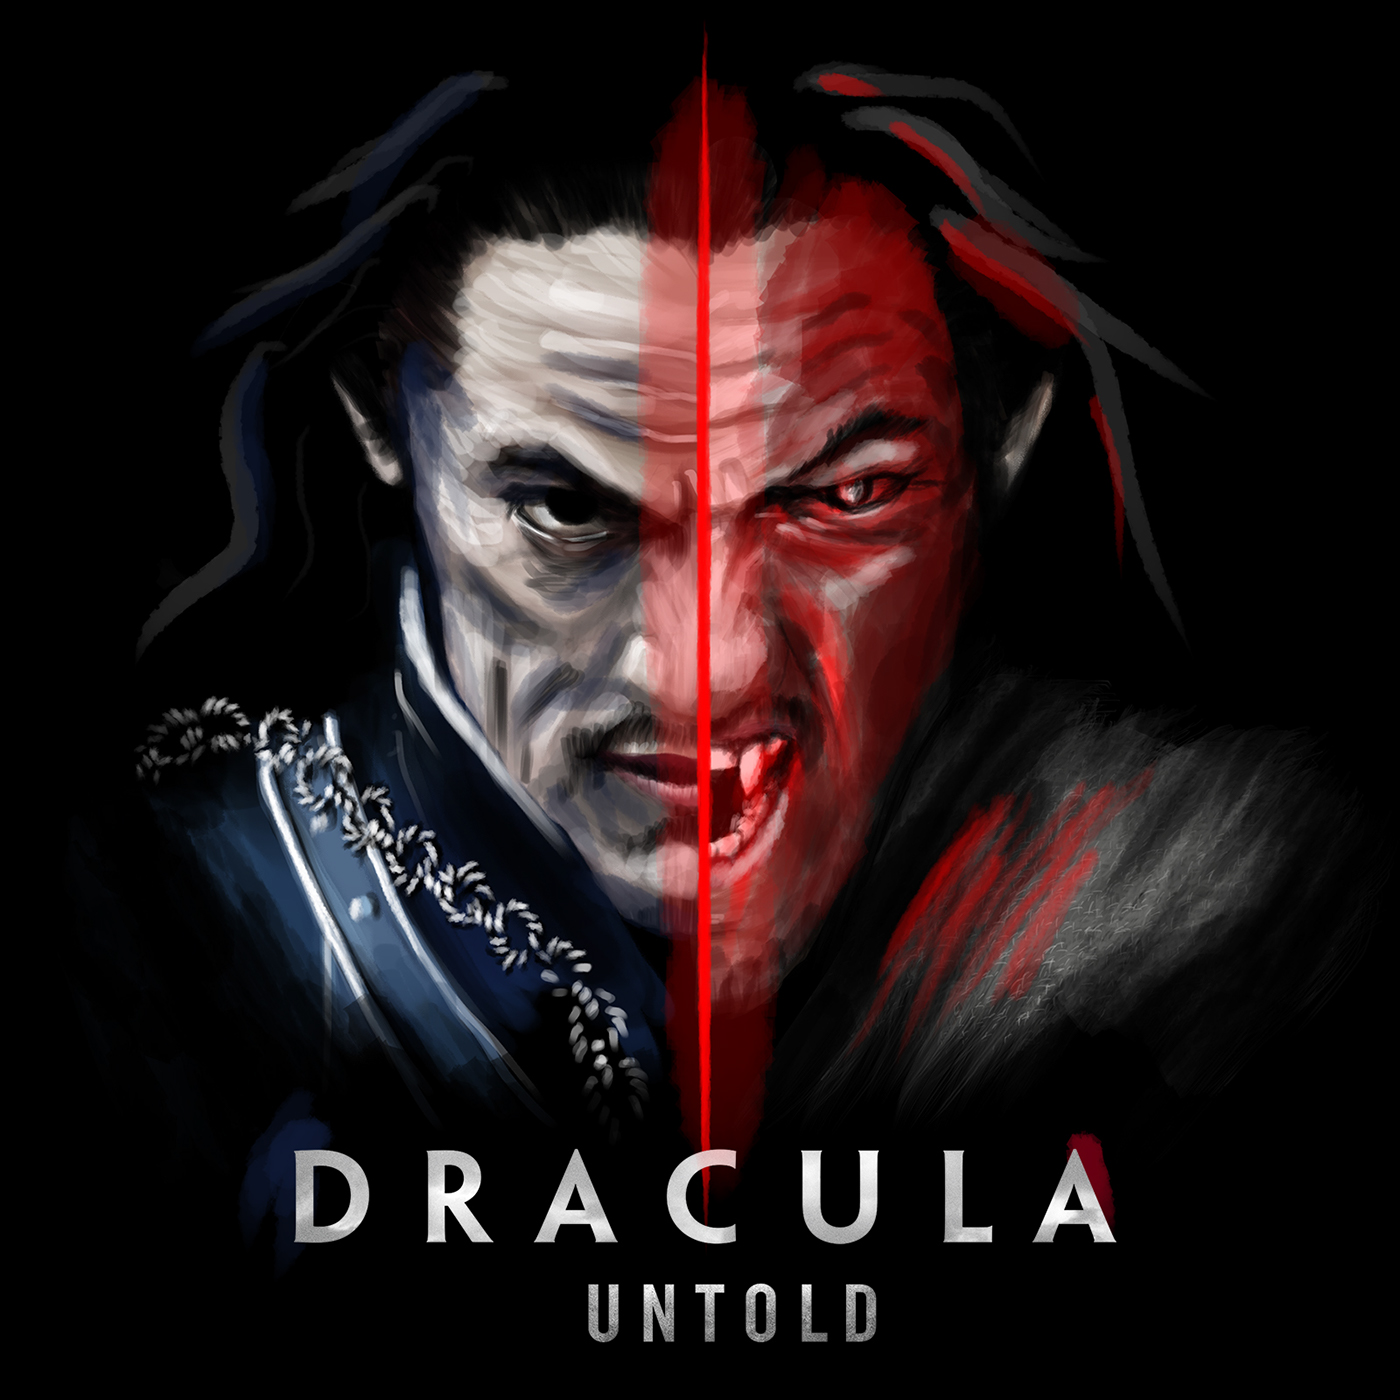 Dracula Art Dracula Untold Cover Art on